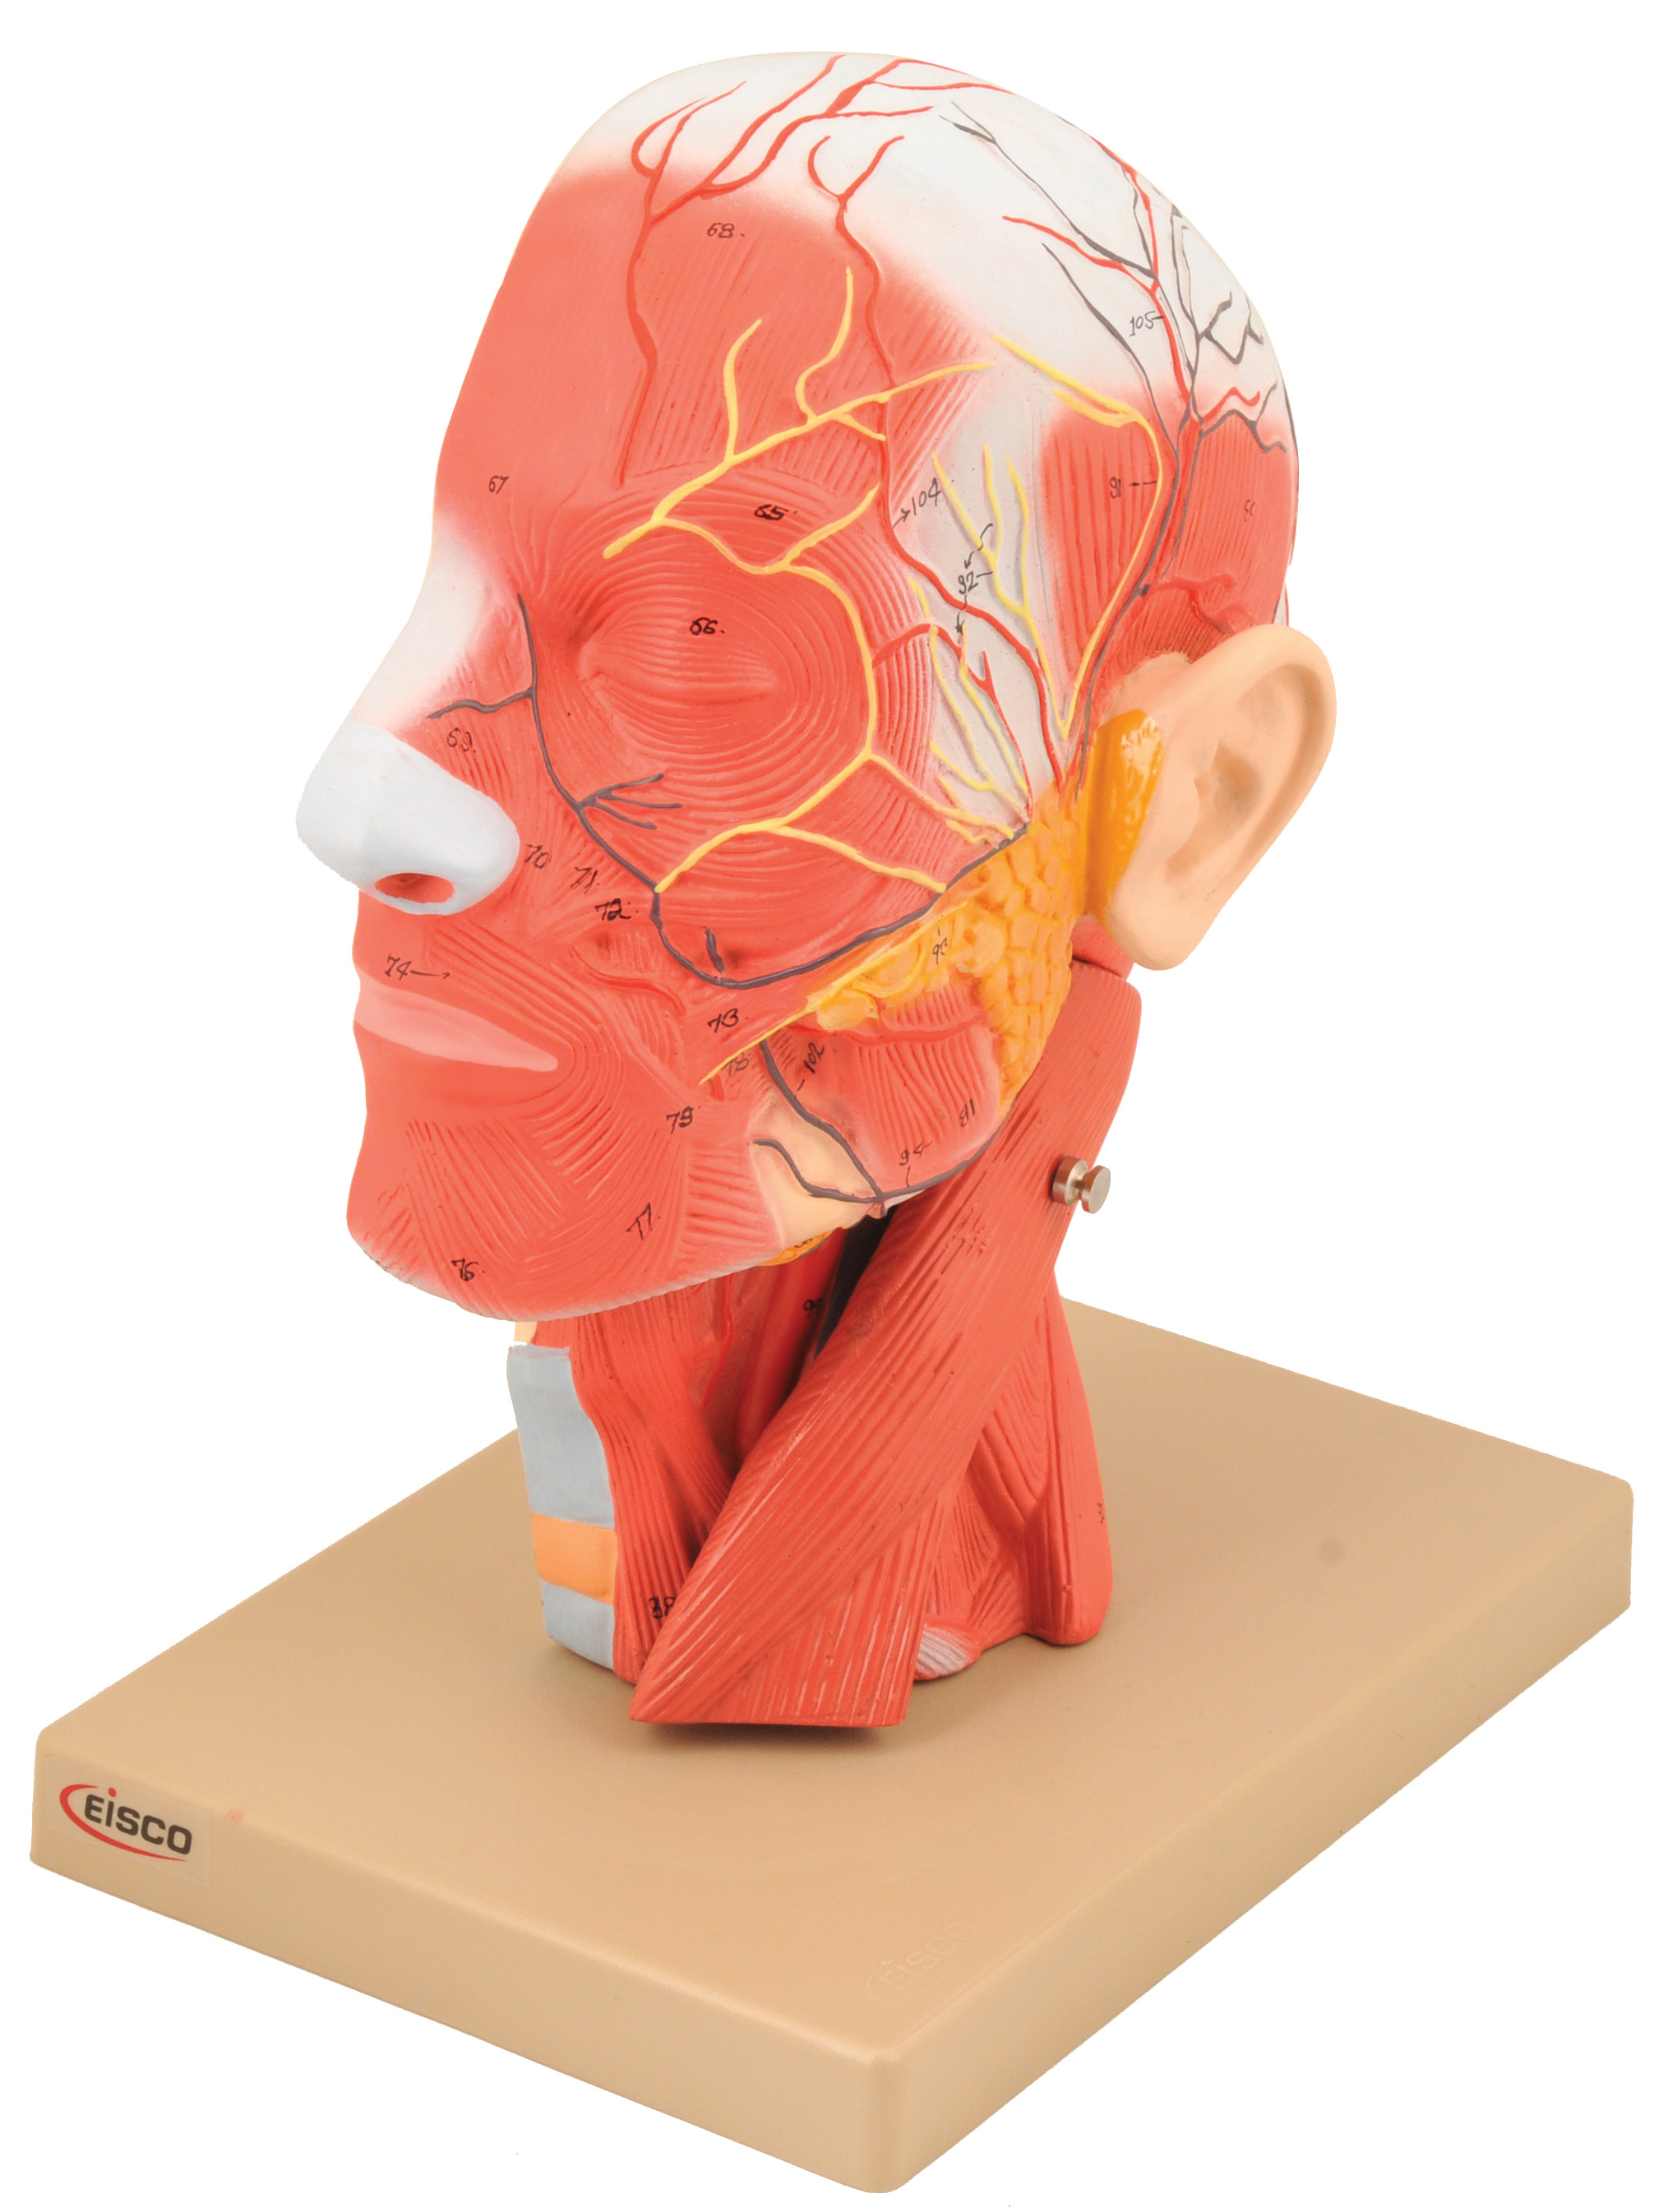 Eisco Labs Model, Human Head, Cross sectional, Neck, Life Size, Cranium by EISCO